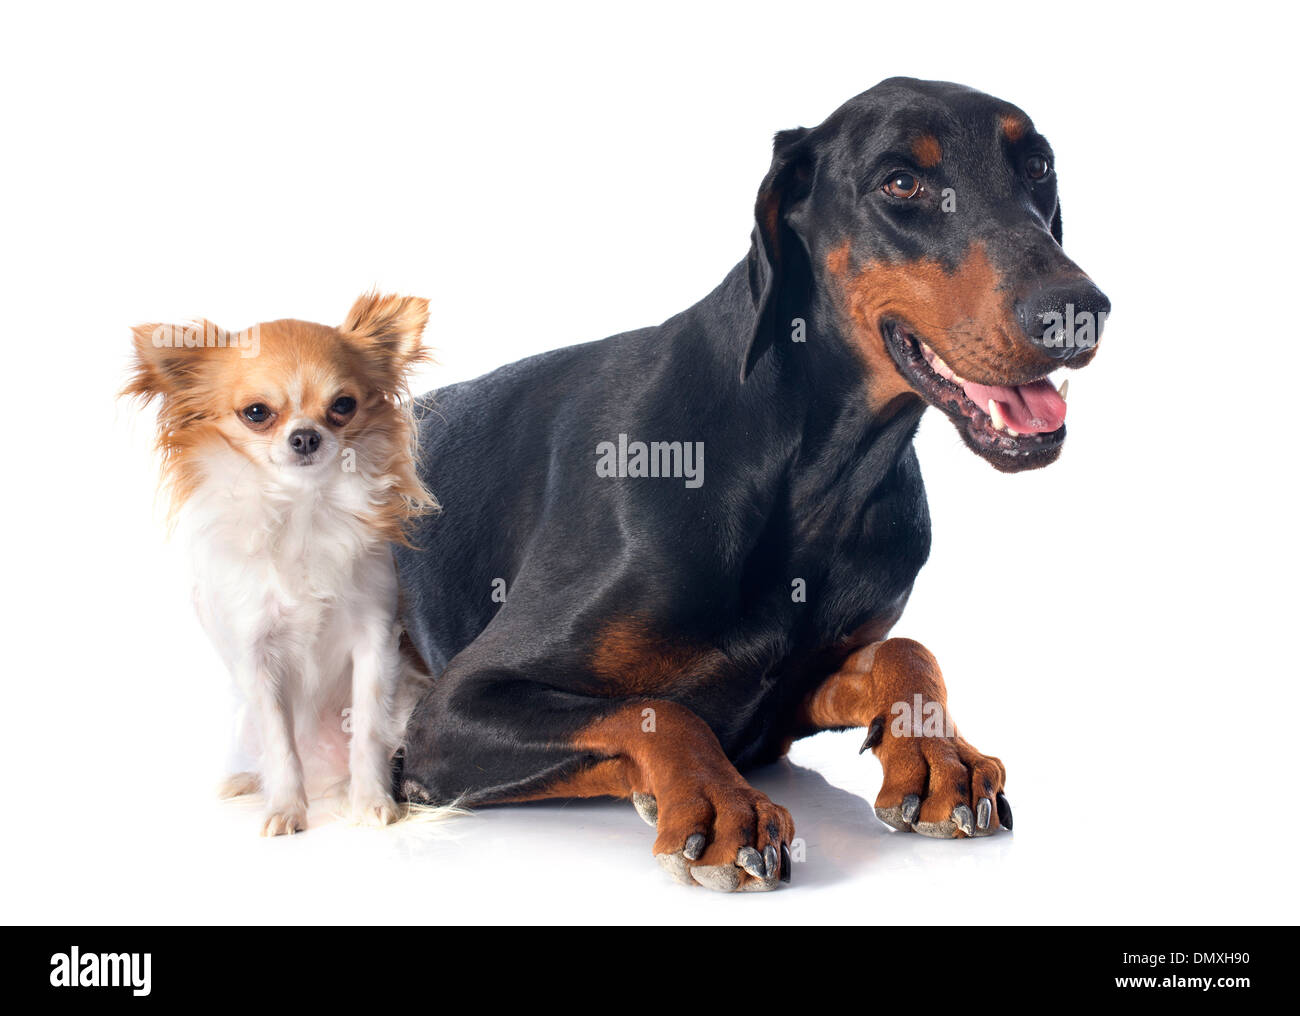 doberman pinscher and chihuahua in front of white background - Stock Image